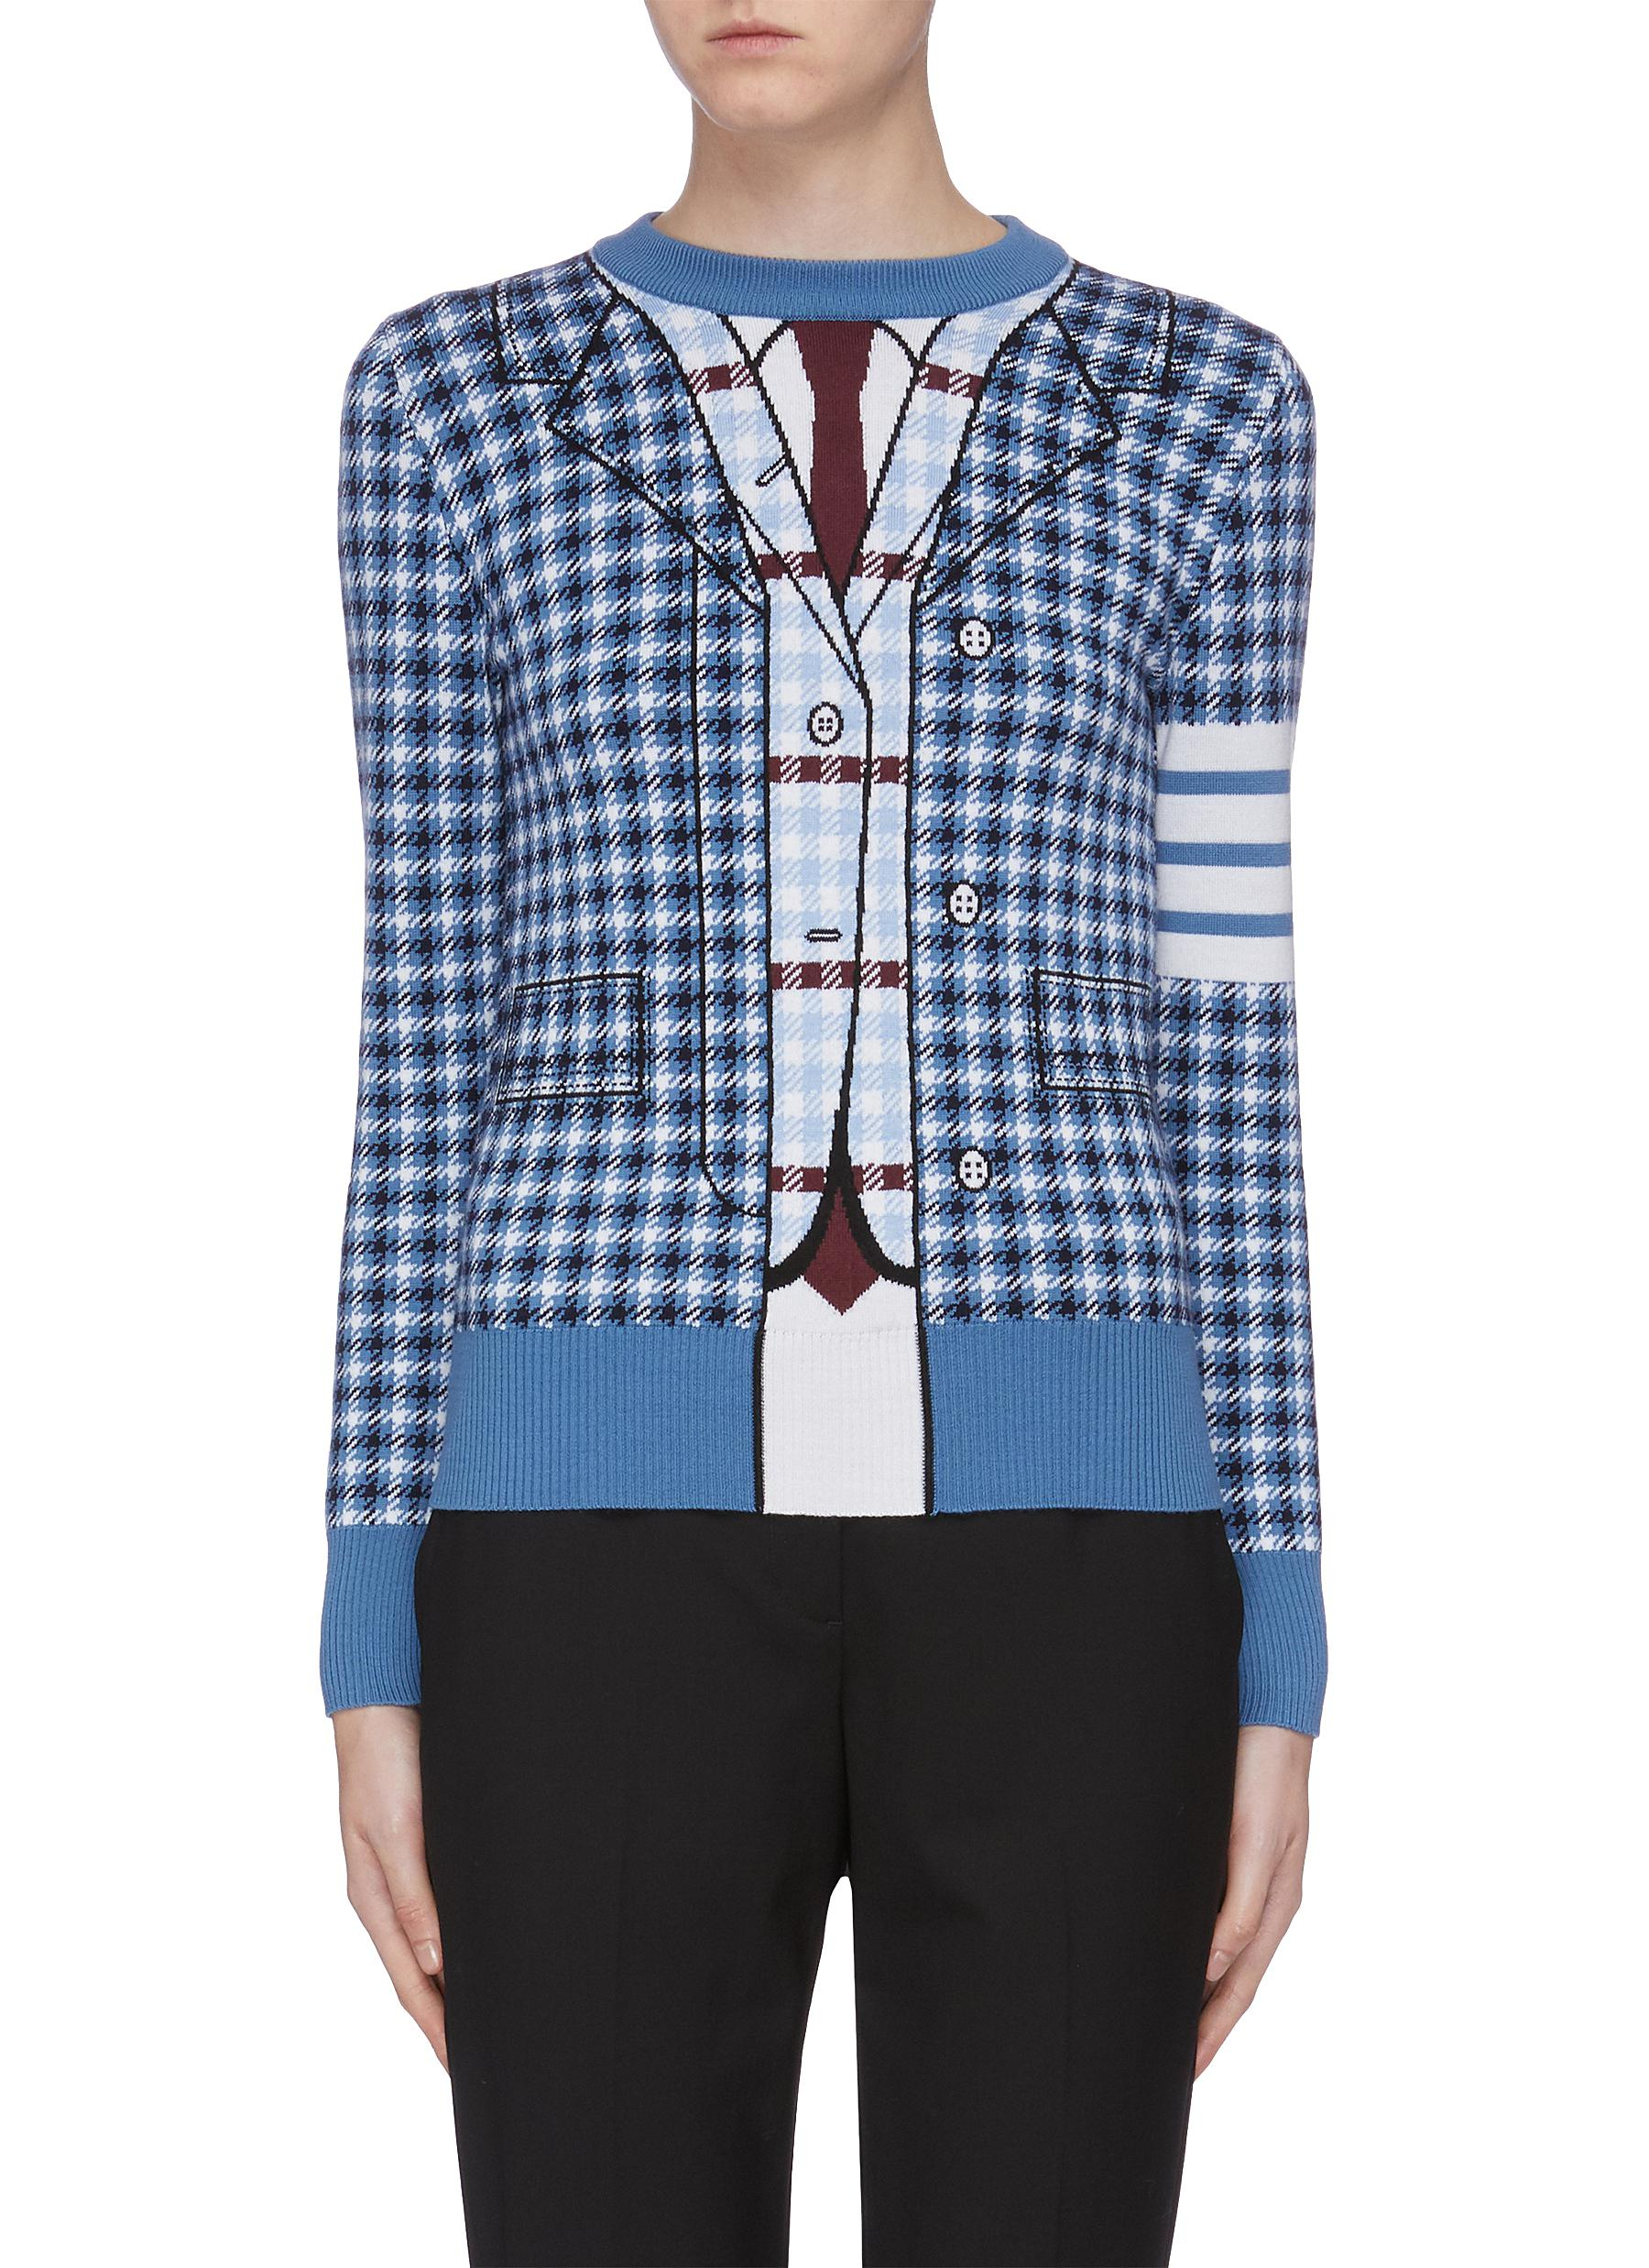 Trompe lail check plaid sweater by Thom Browne